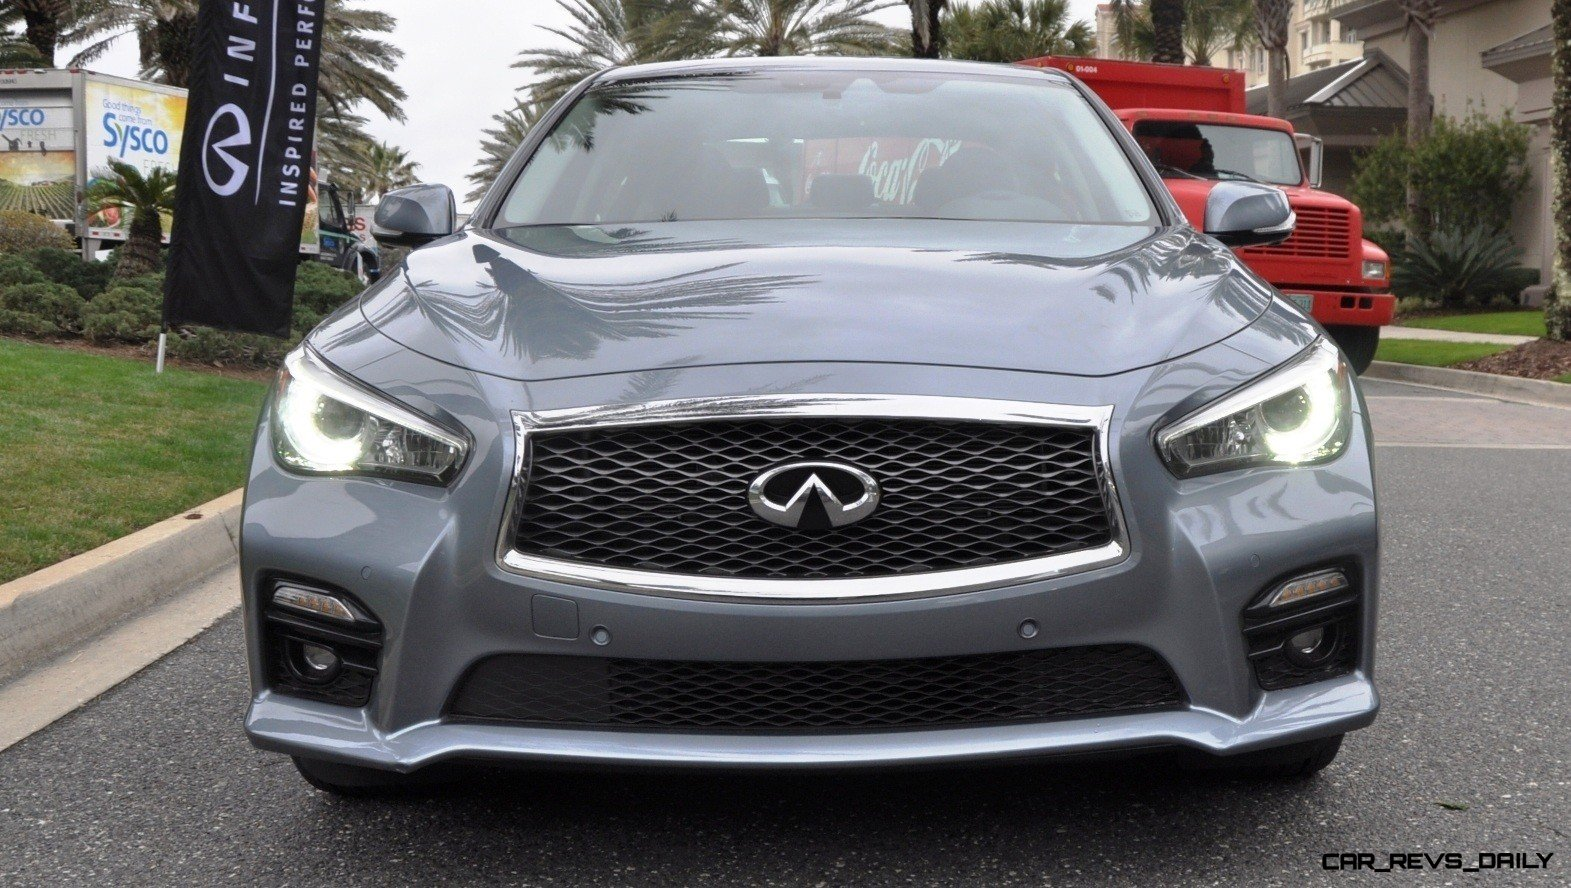 2014 INFINITI Q50S AWD Hybrid -- 1080p HD Road Test Videos & 50 Photos -- AAA+ Refinement and Truly Authentic Steering -- An Excellent BMW 535i Competitor 23